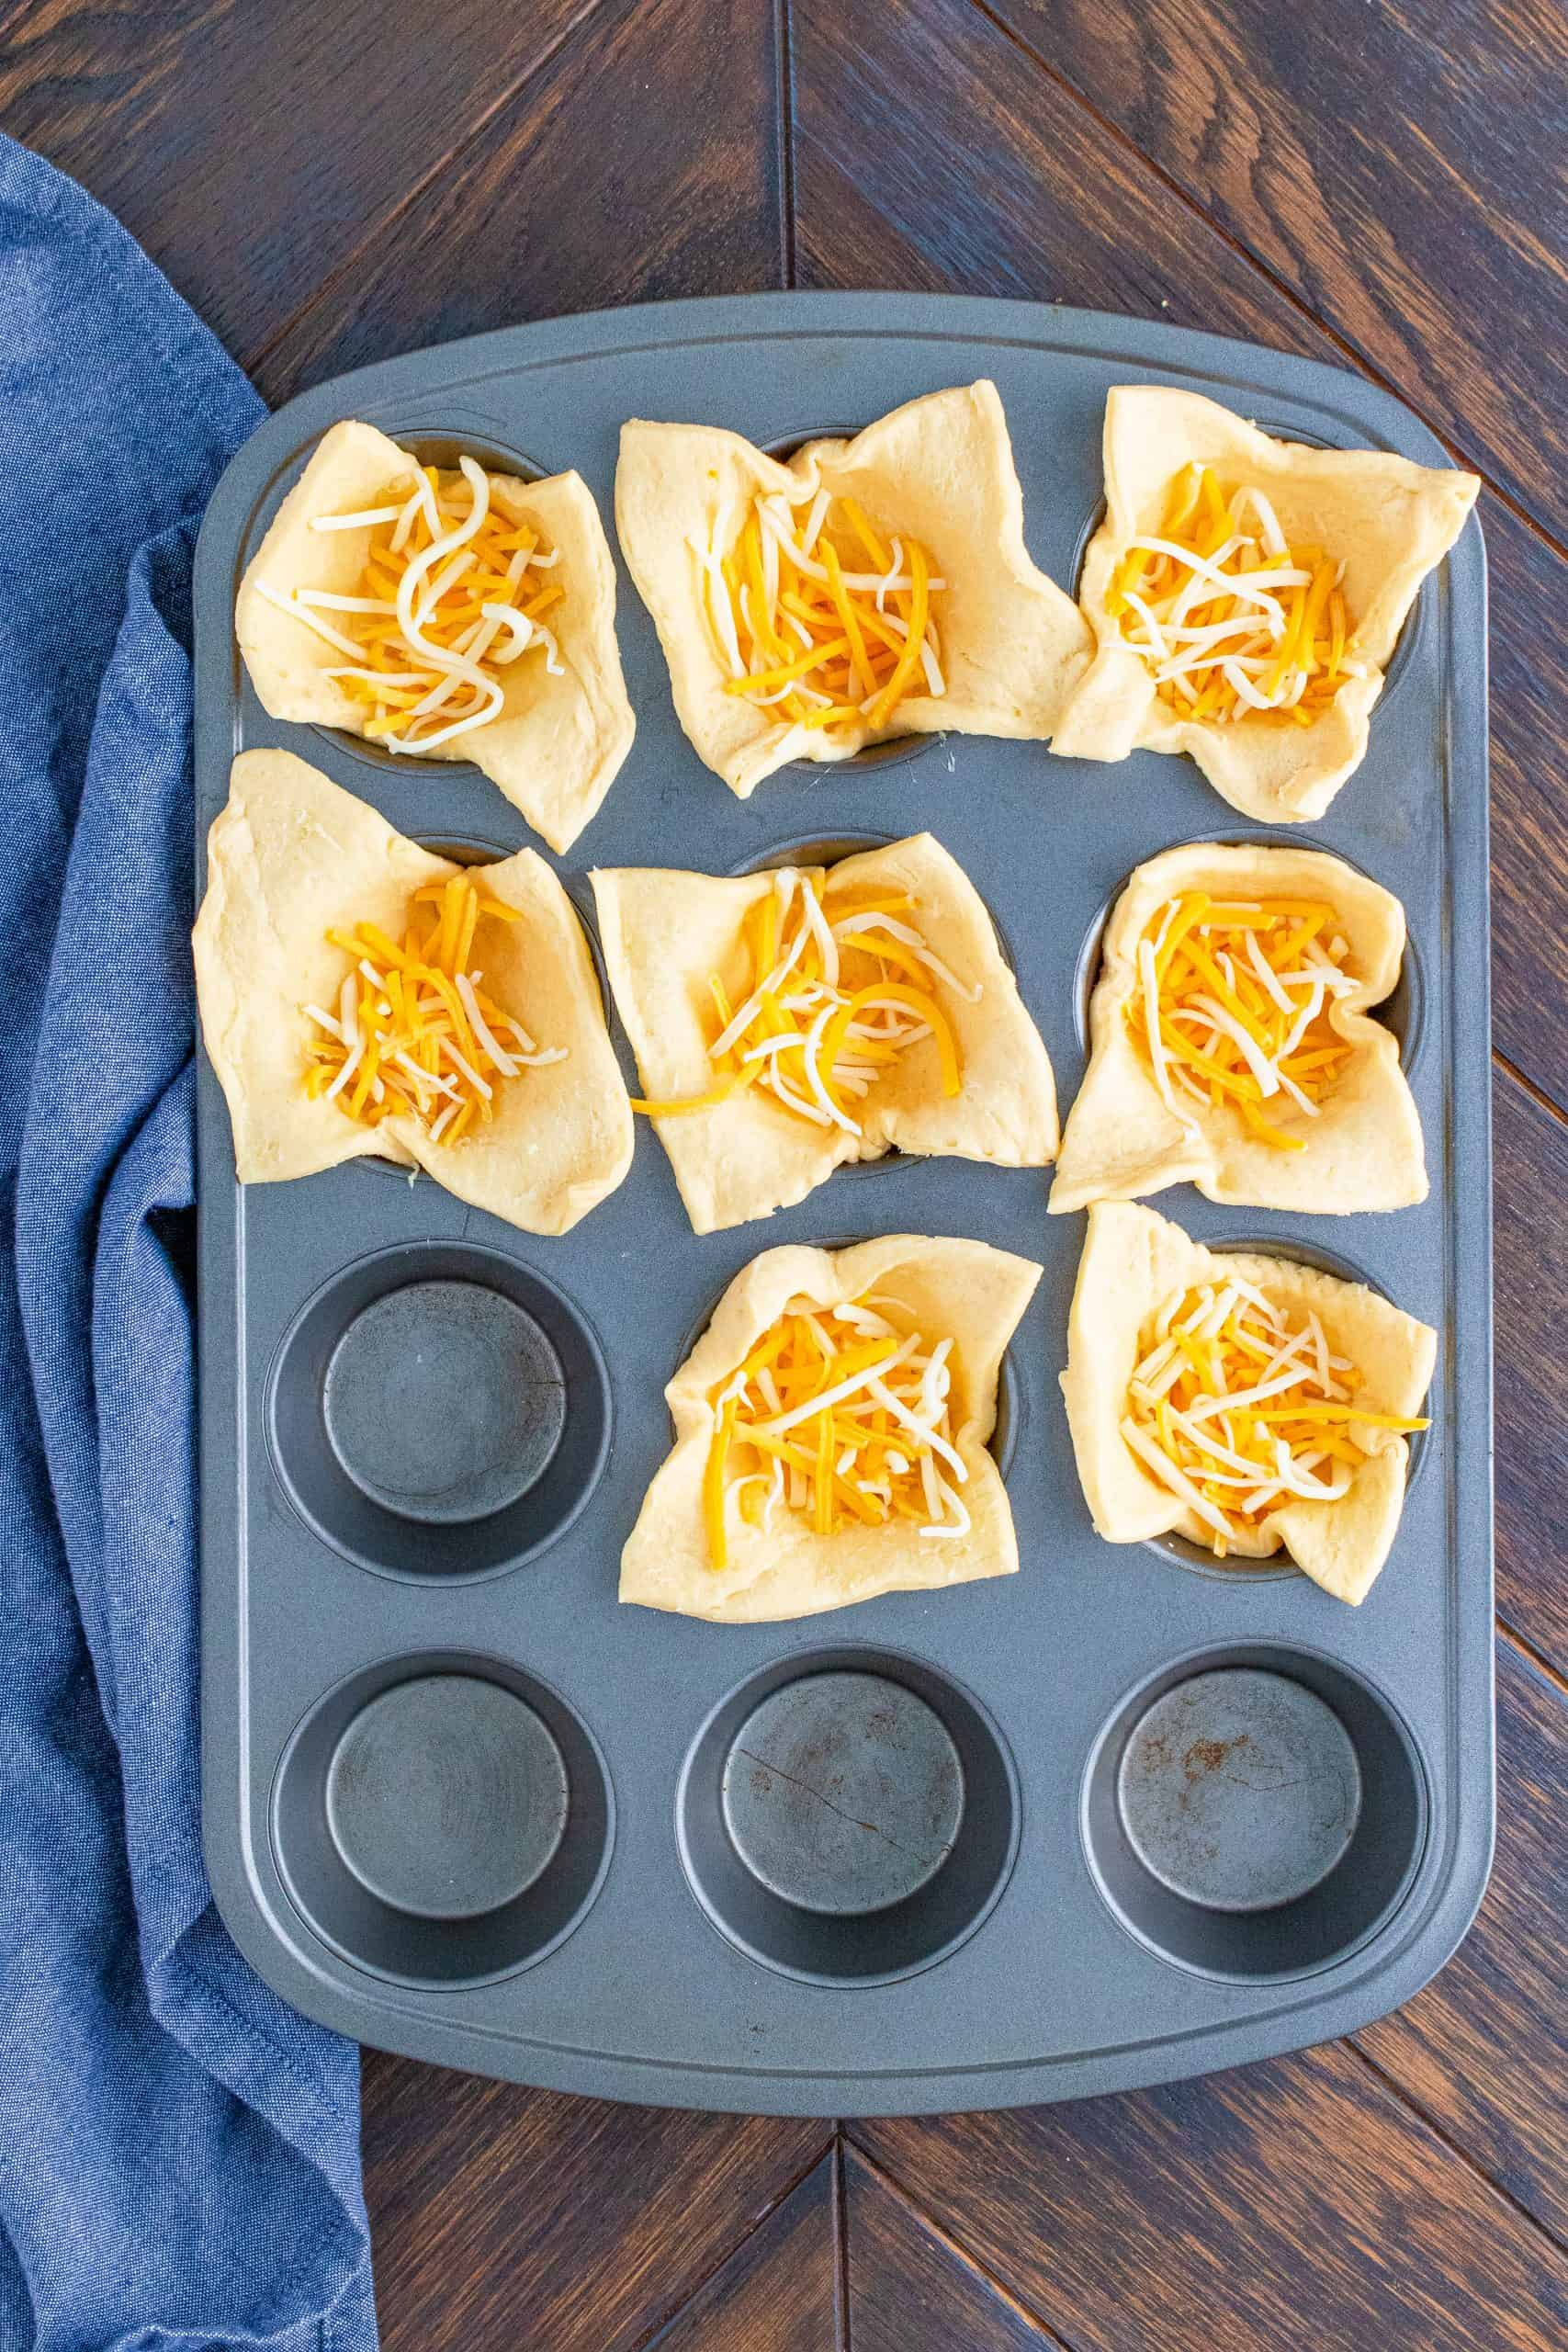 Shredded cheese added to the crescent dough in muffin tin.